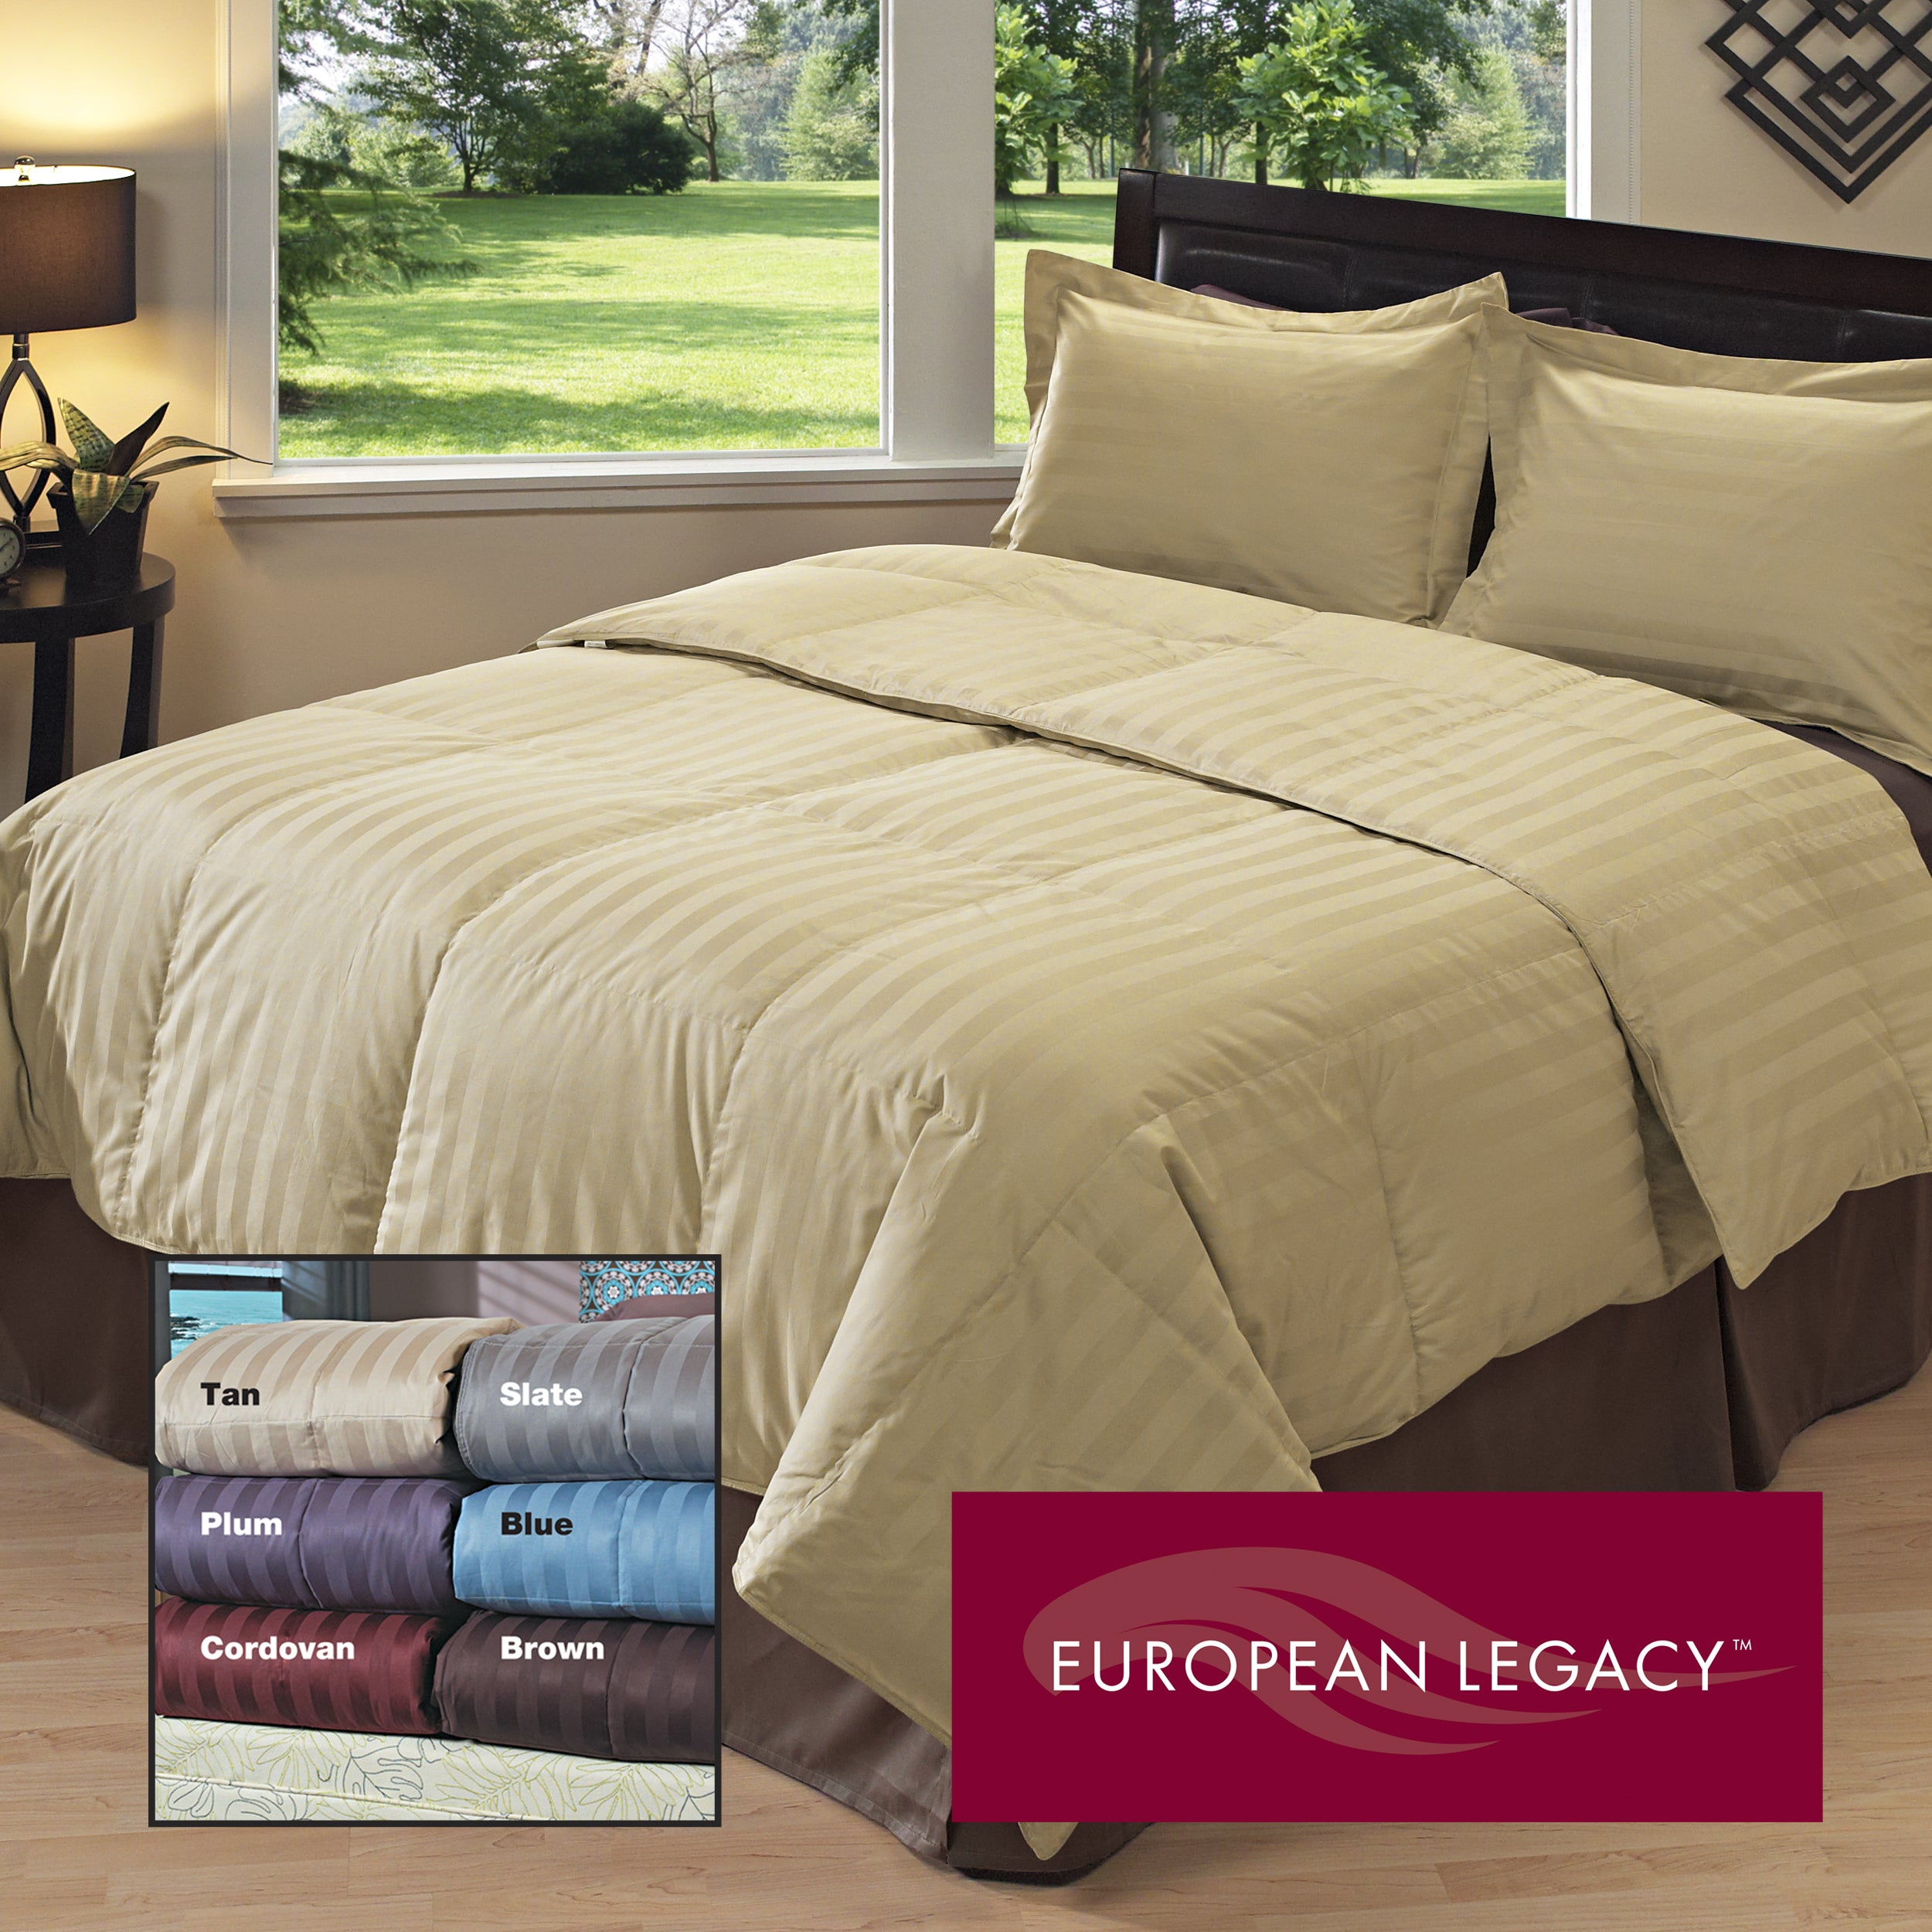 European Legacy Luxury Down-like Comforter/ Sham Set